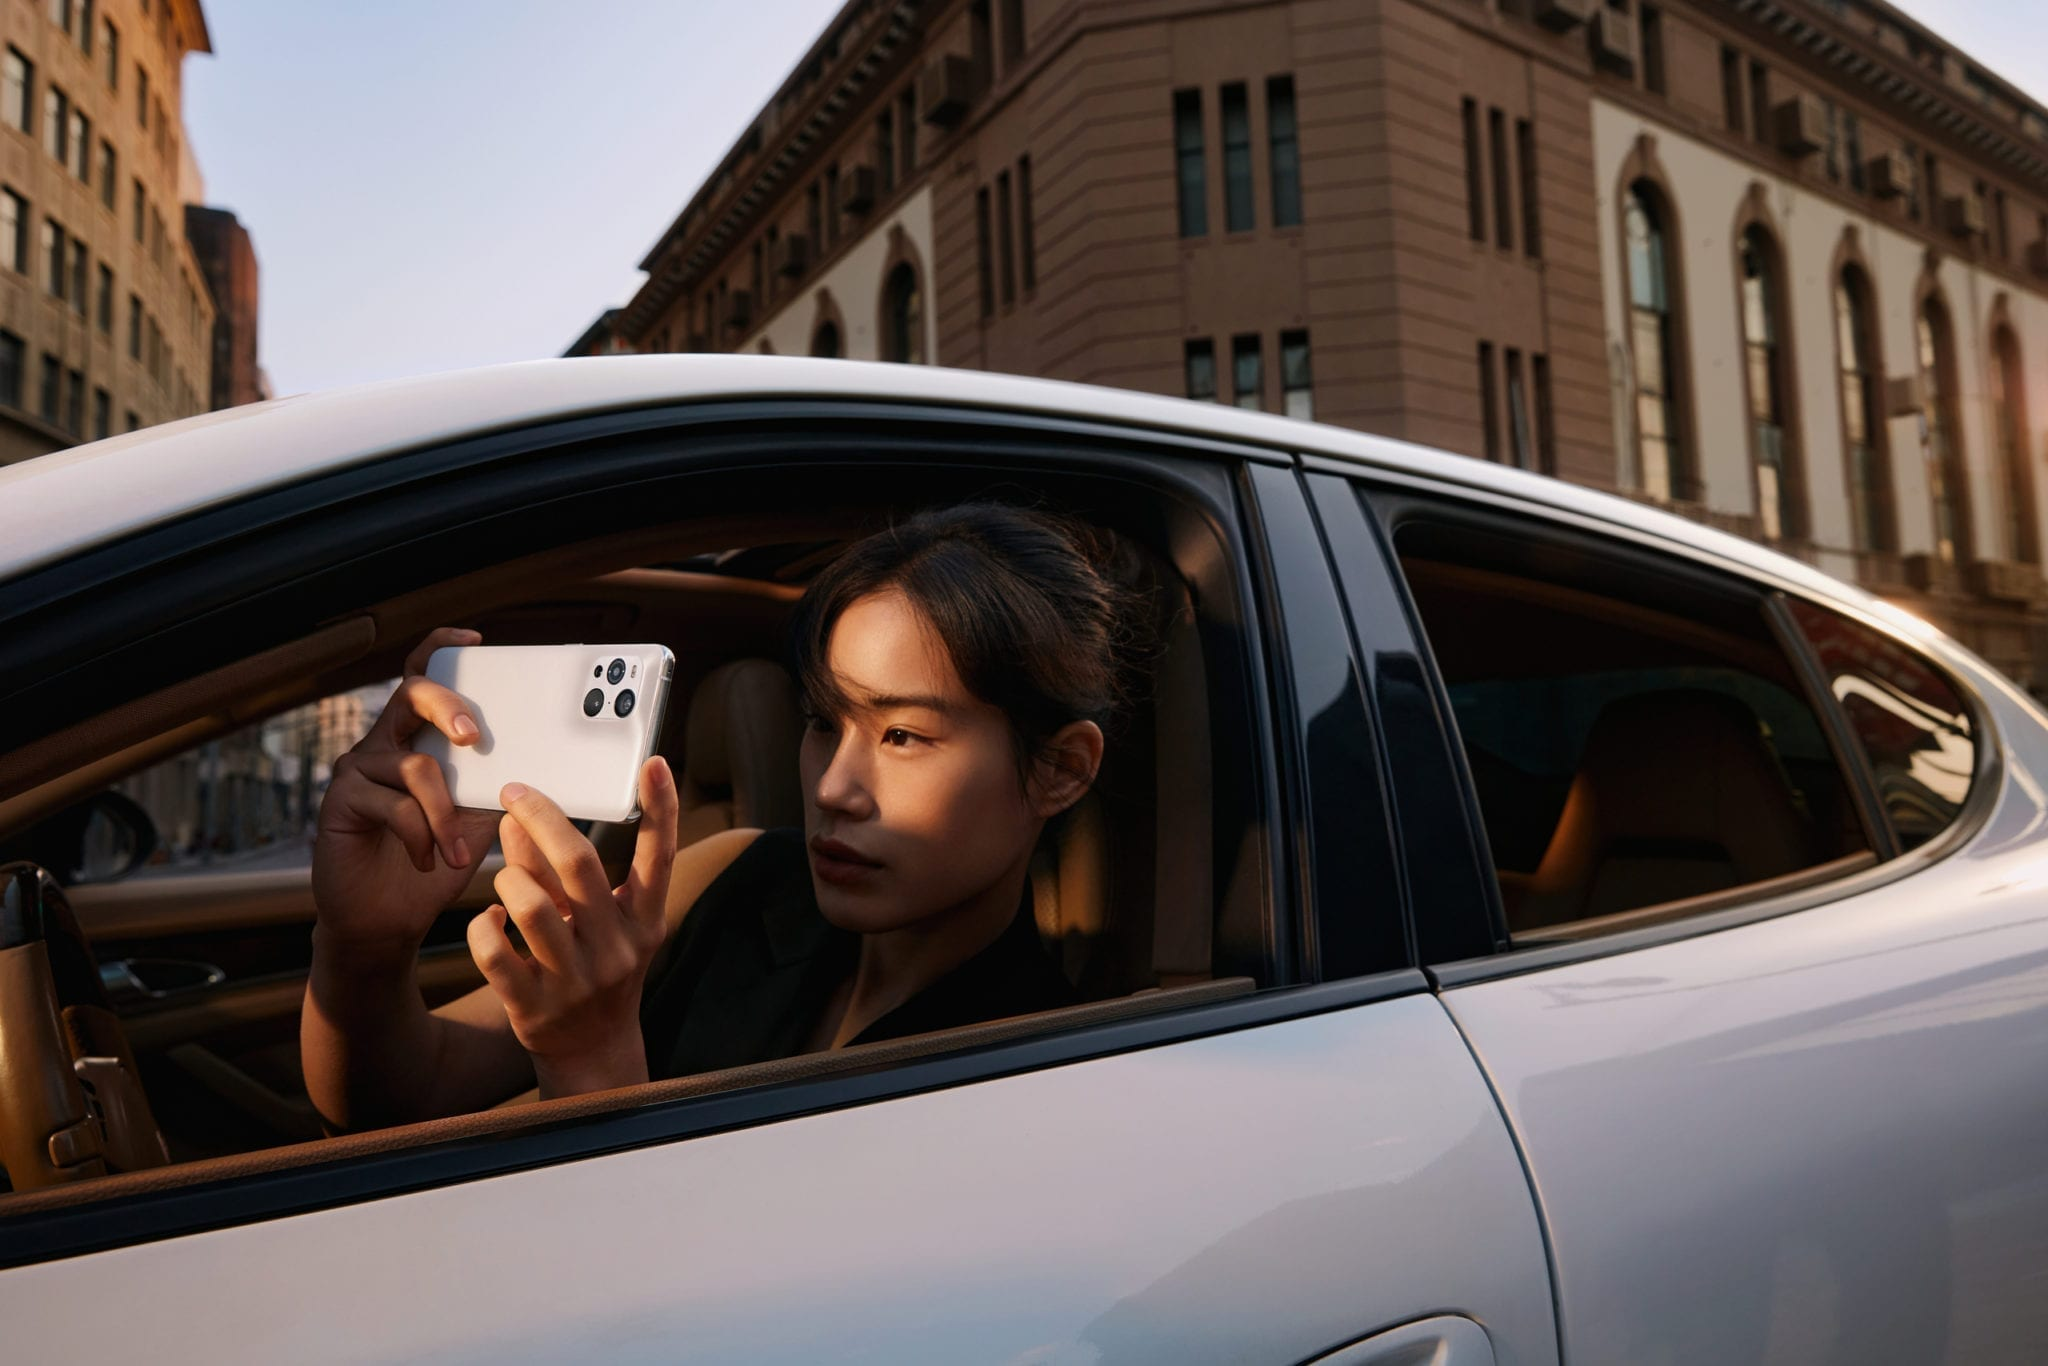 OPPO LAUNCHES FIND X3 SERIES WITH TRAIL-BLAZING CAMERA AND DISPLAY TECHNOLOGY